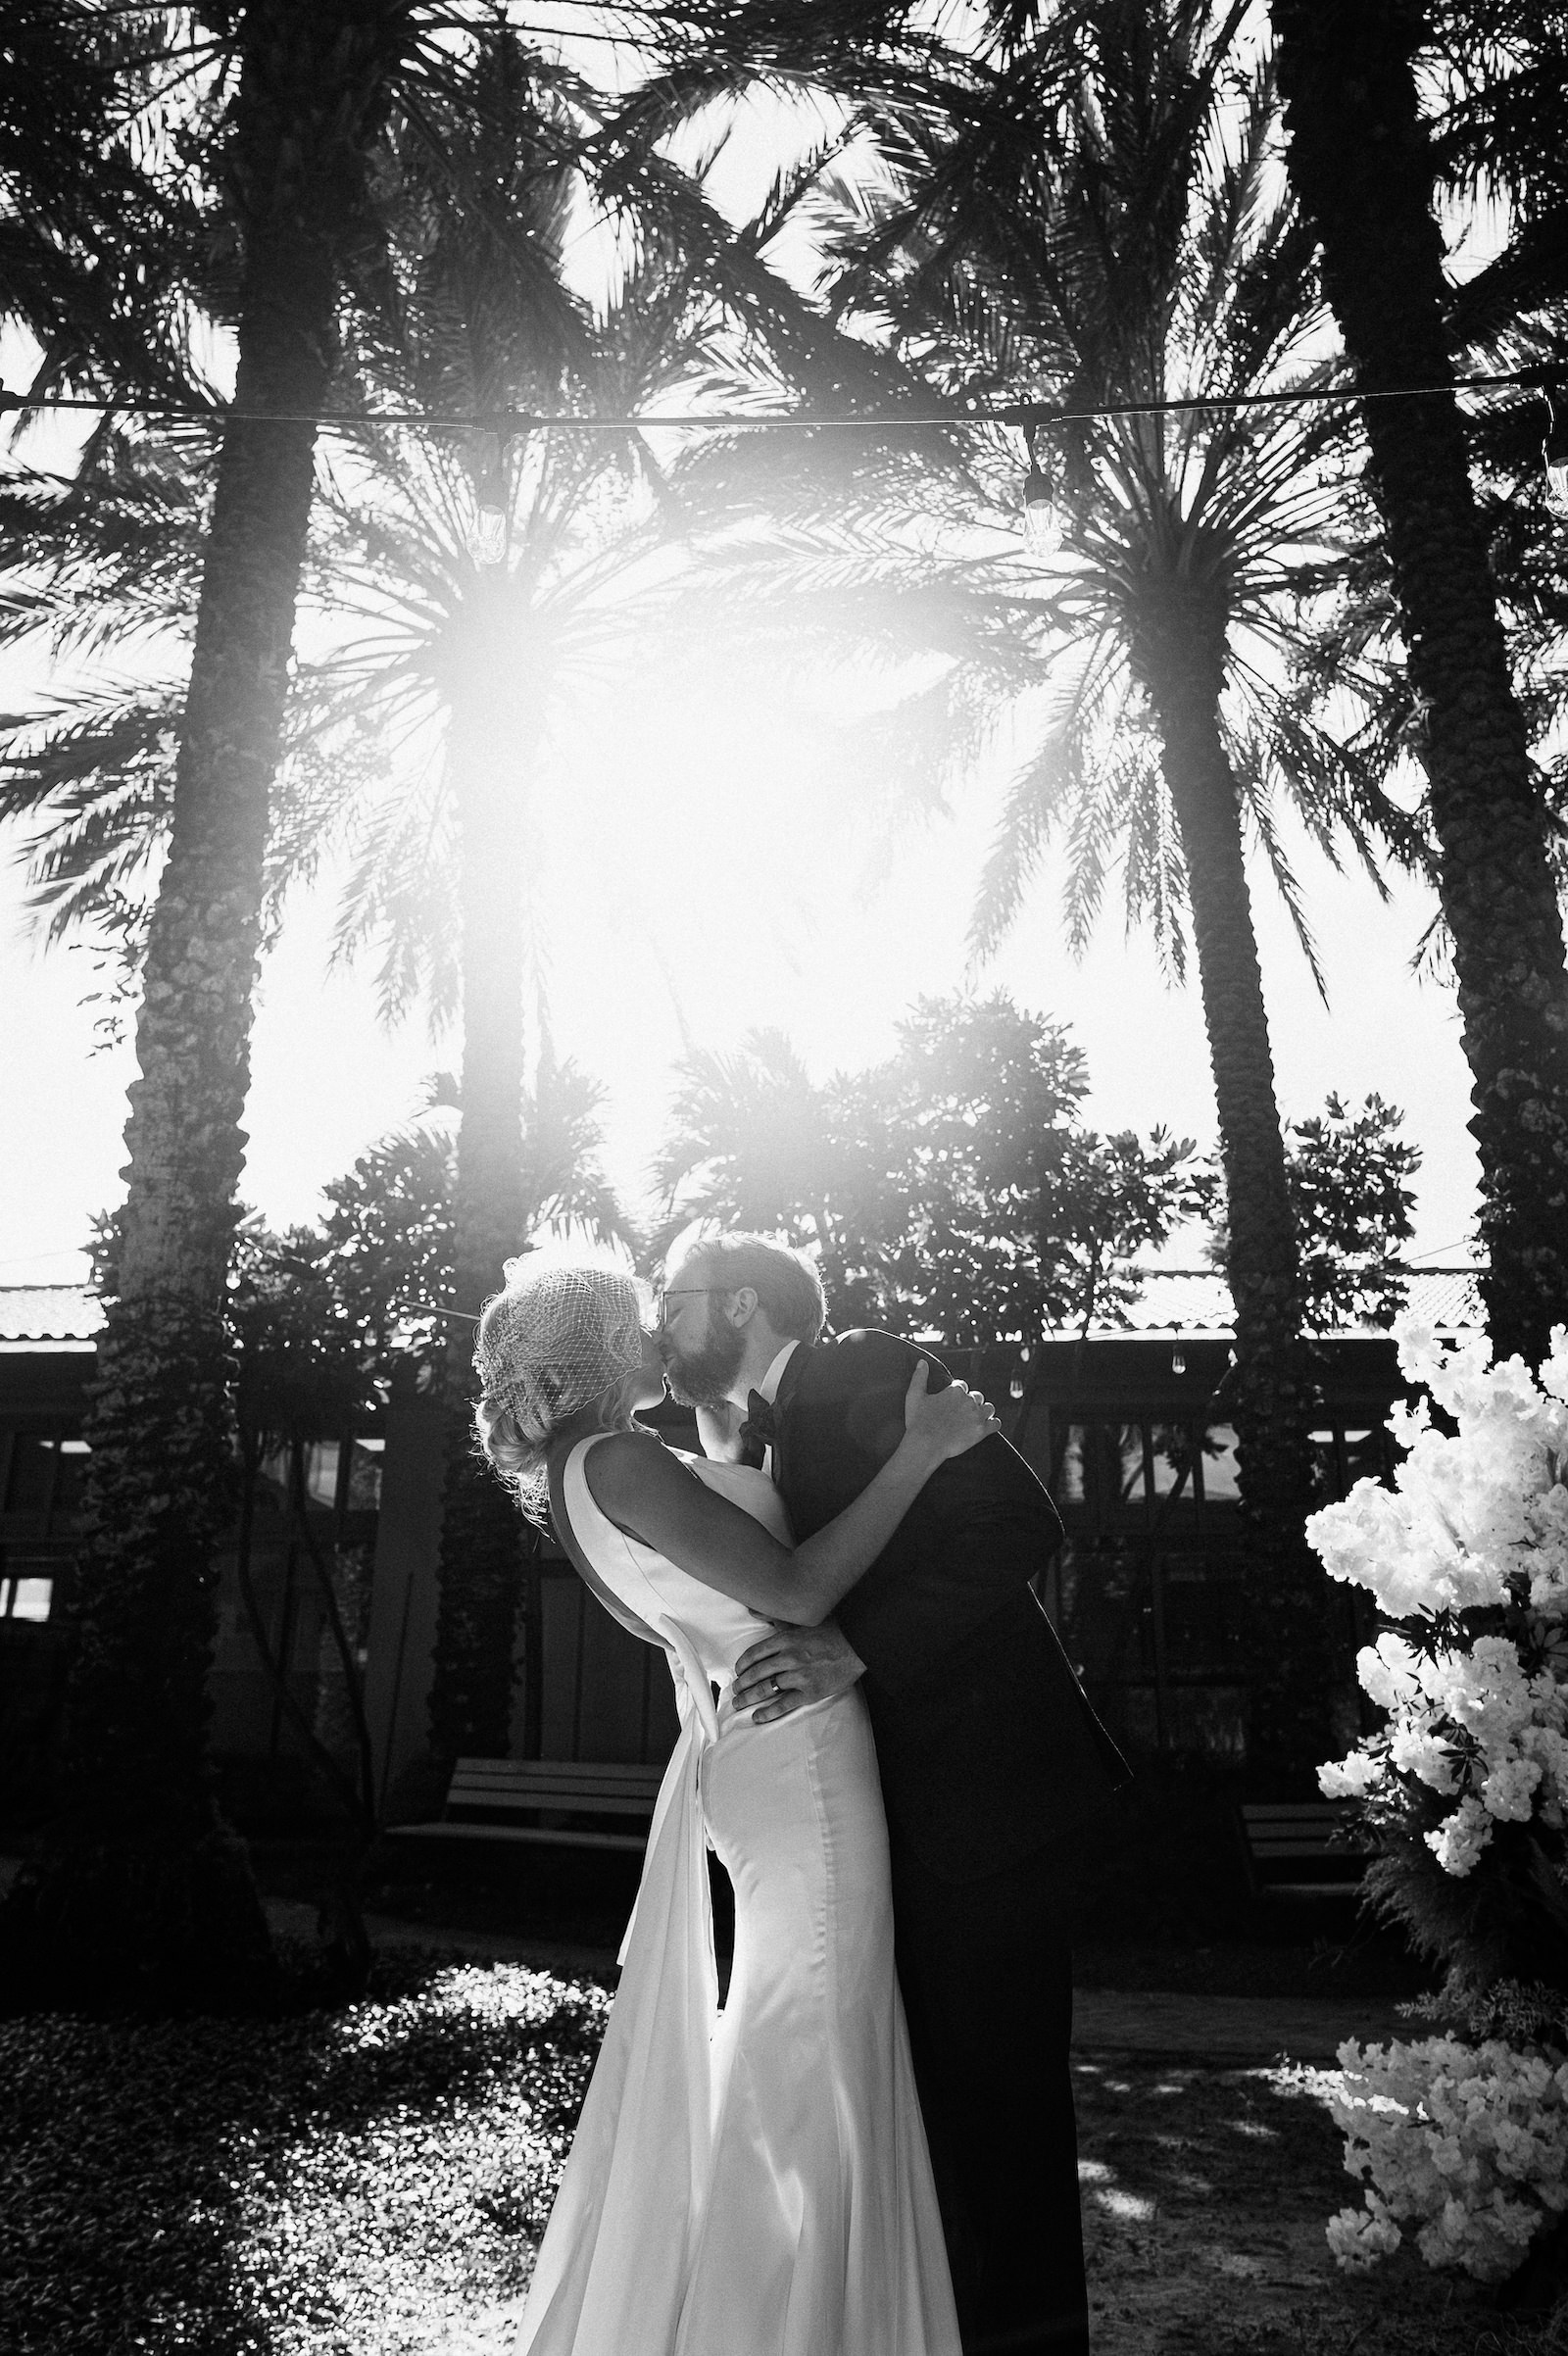 Bride and Groom Outdoor Atrium Intimate COVID Elopement Micro Wedding Ceremony at St. Pete Wedding Venue The Poynter Institute   LoAdoro Bridal Sleek Fitted Modern Wedding Dress Bridal Gown with Birdcage Veil from Tampa Bridal Shop Truly Forever Bridal   Black and White Wedding Photography with Sun Flare   Dewitt for Love Photography